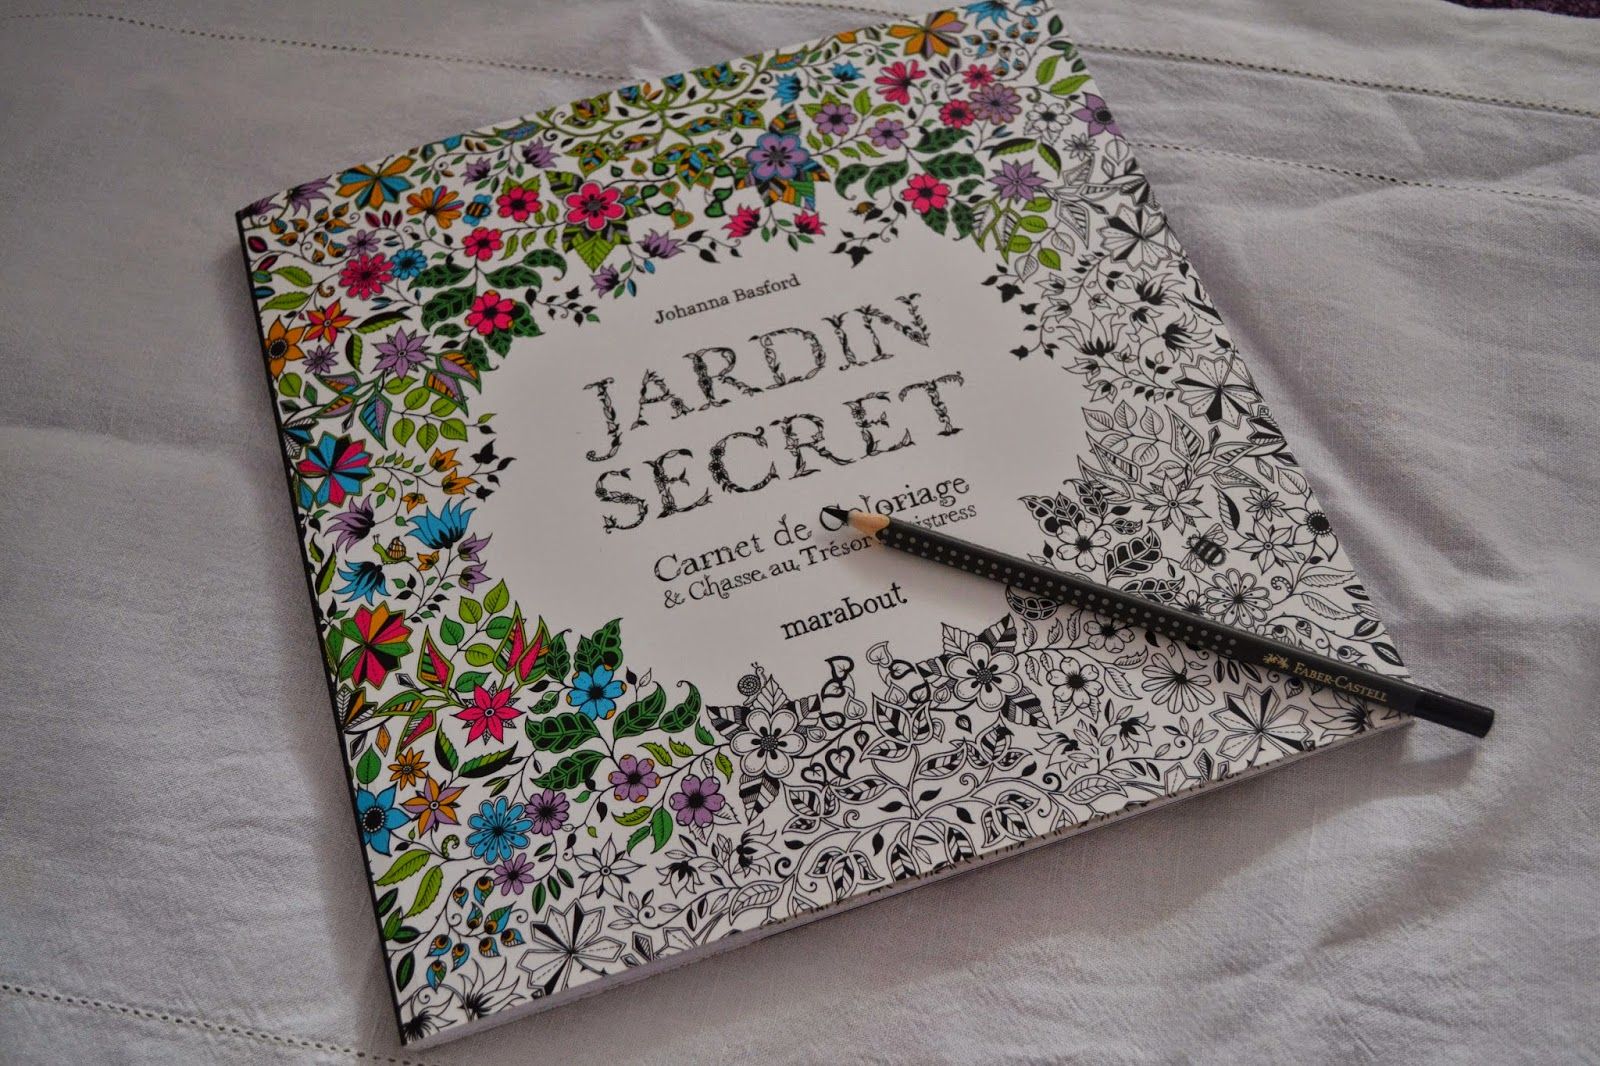 Le coloriage pour adultes art th rapie jardin secret for Akeo jardin secret 2015